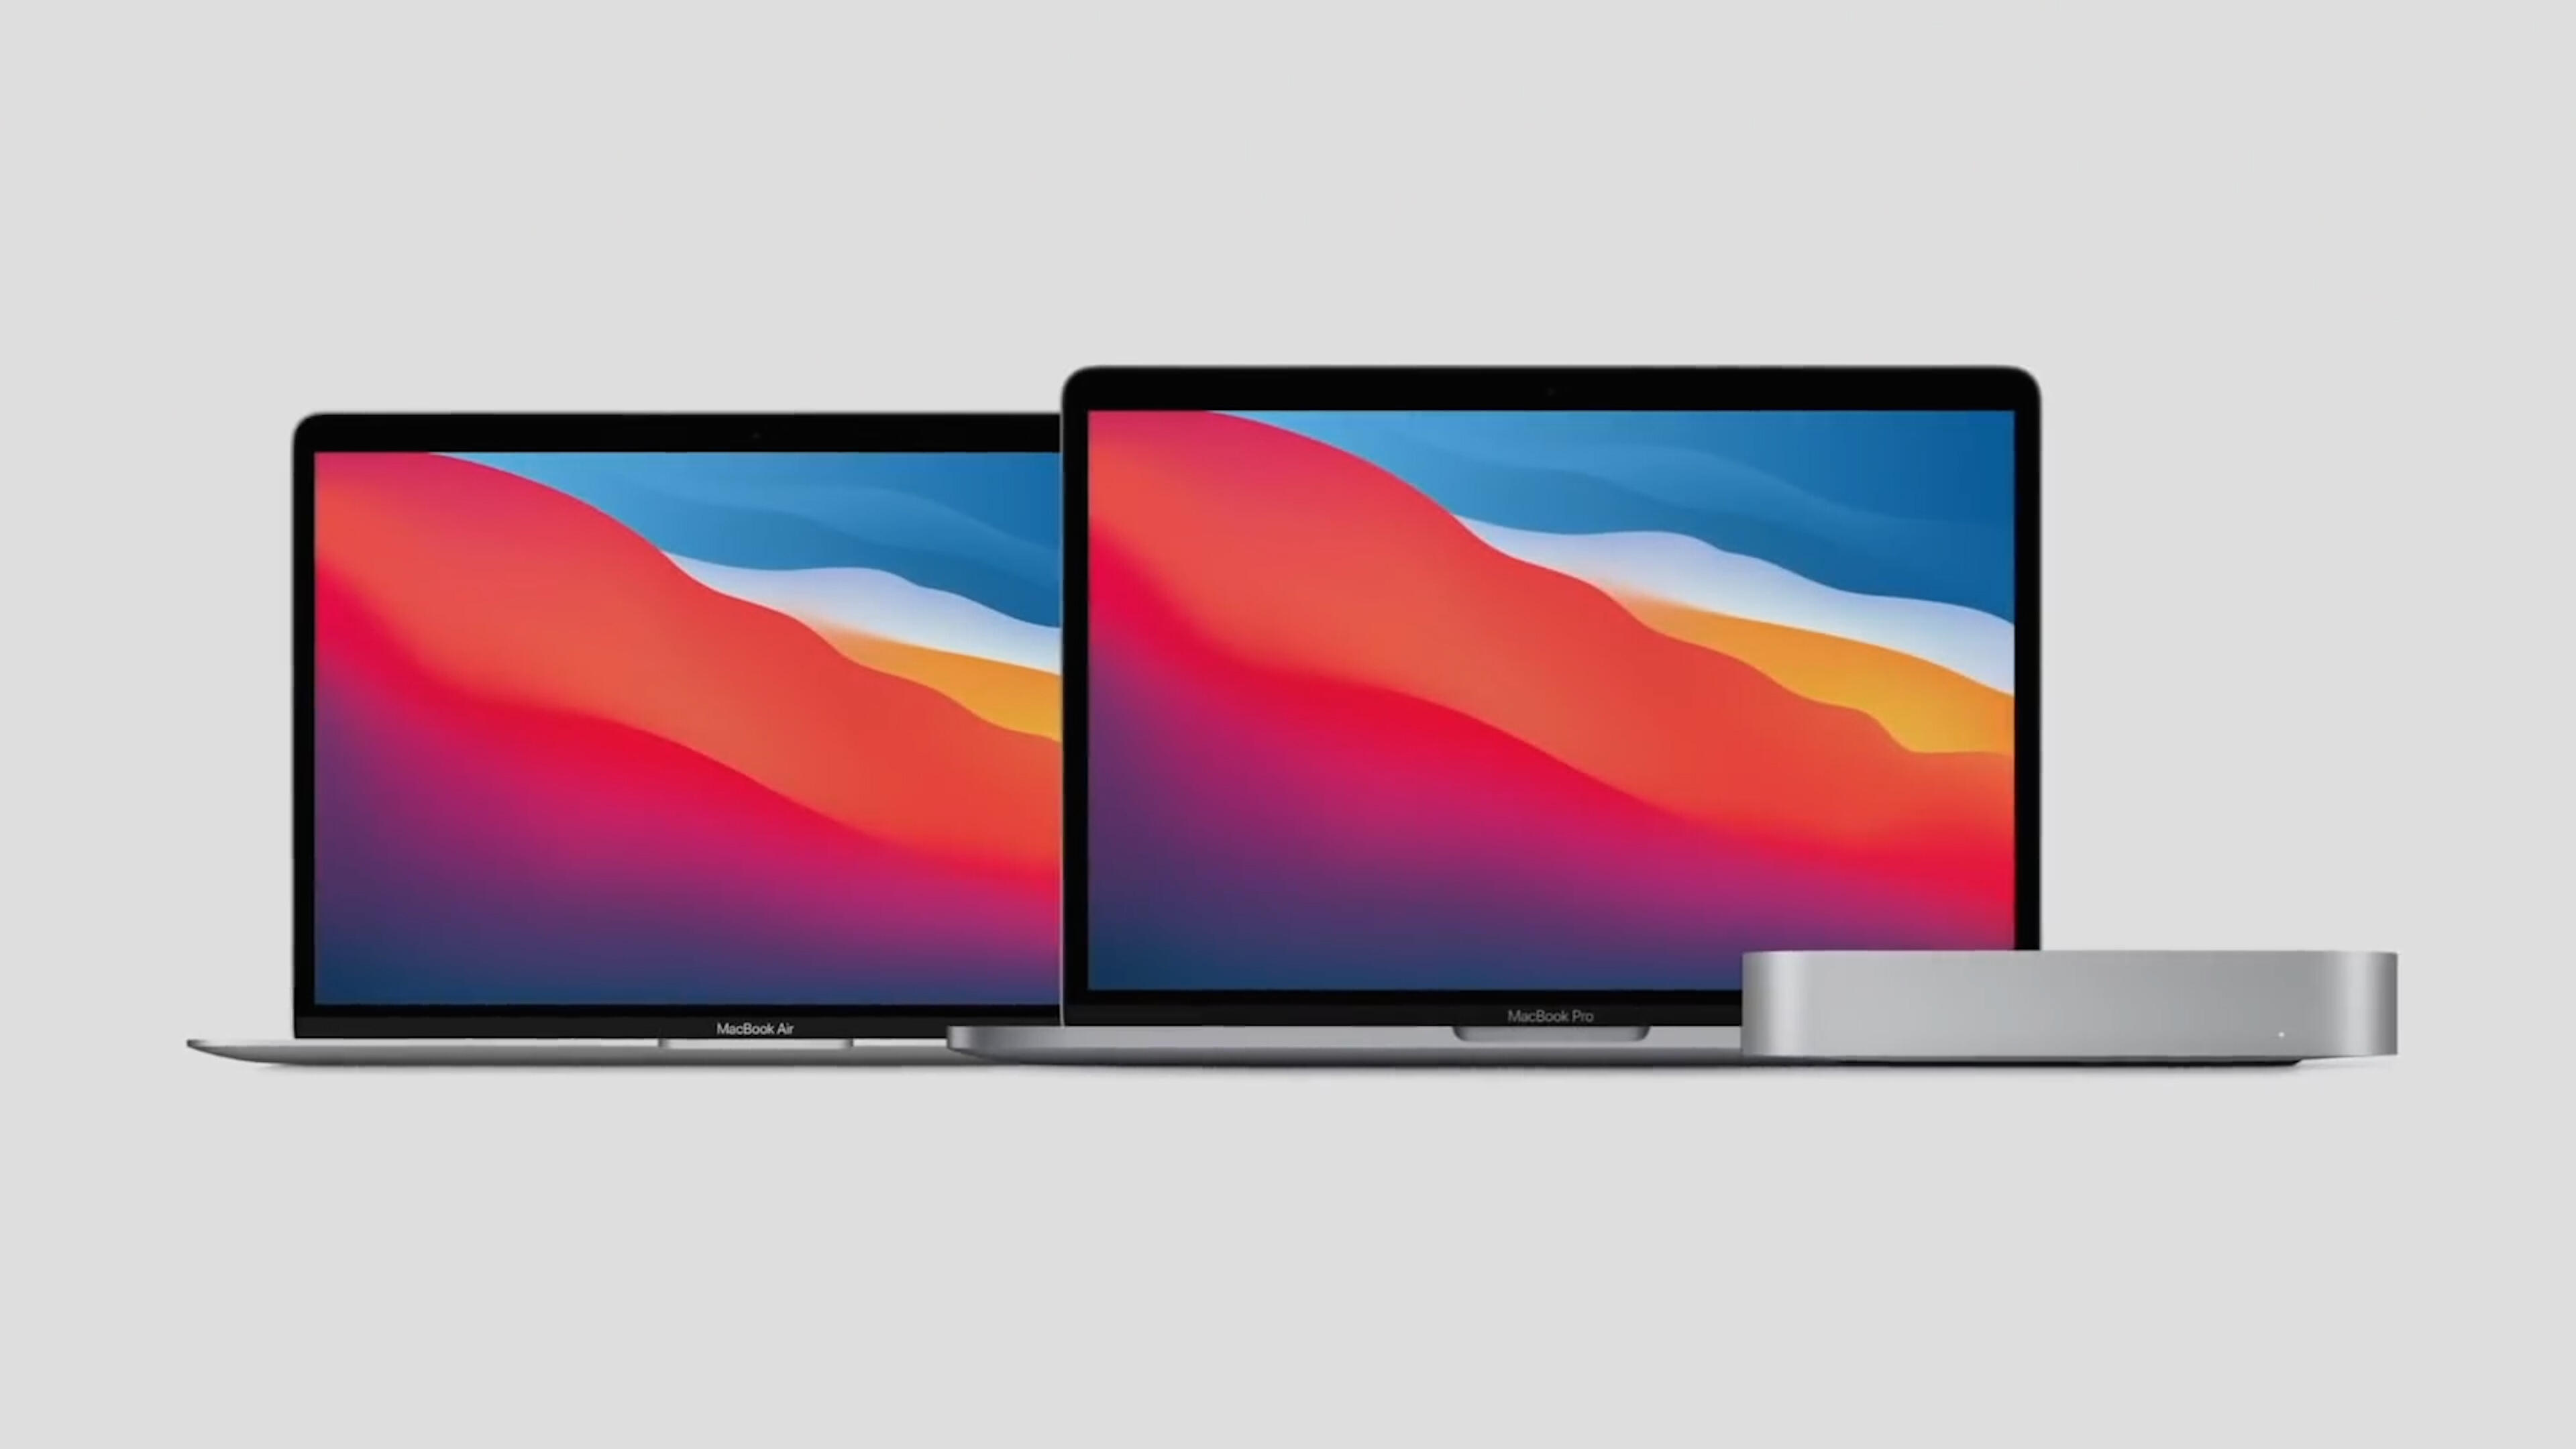 Video: Apple silicon Macs: Don't get them yet